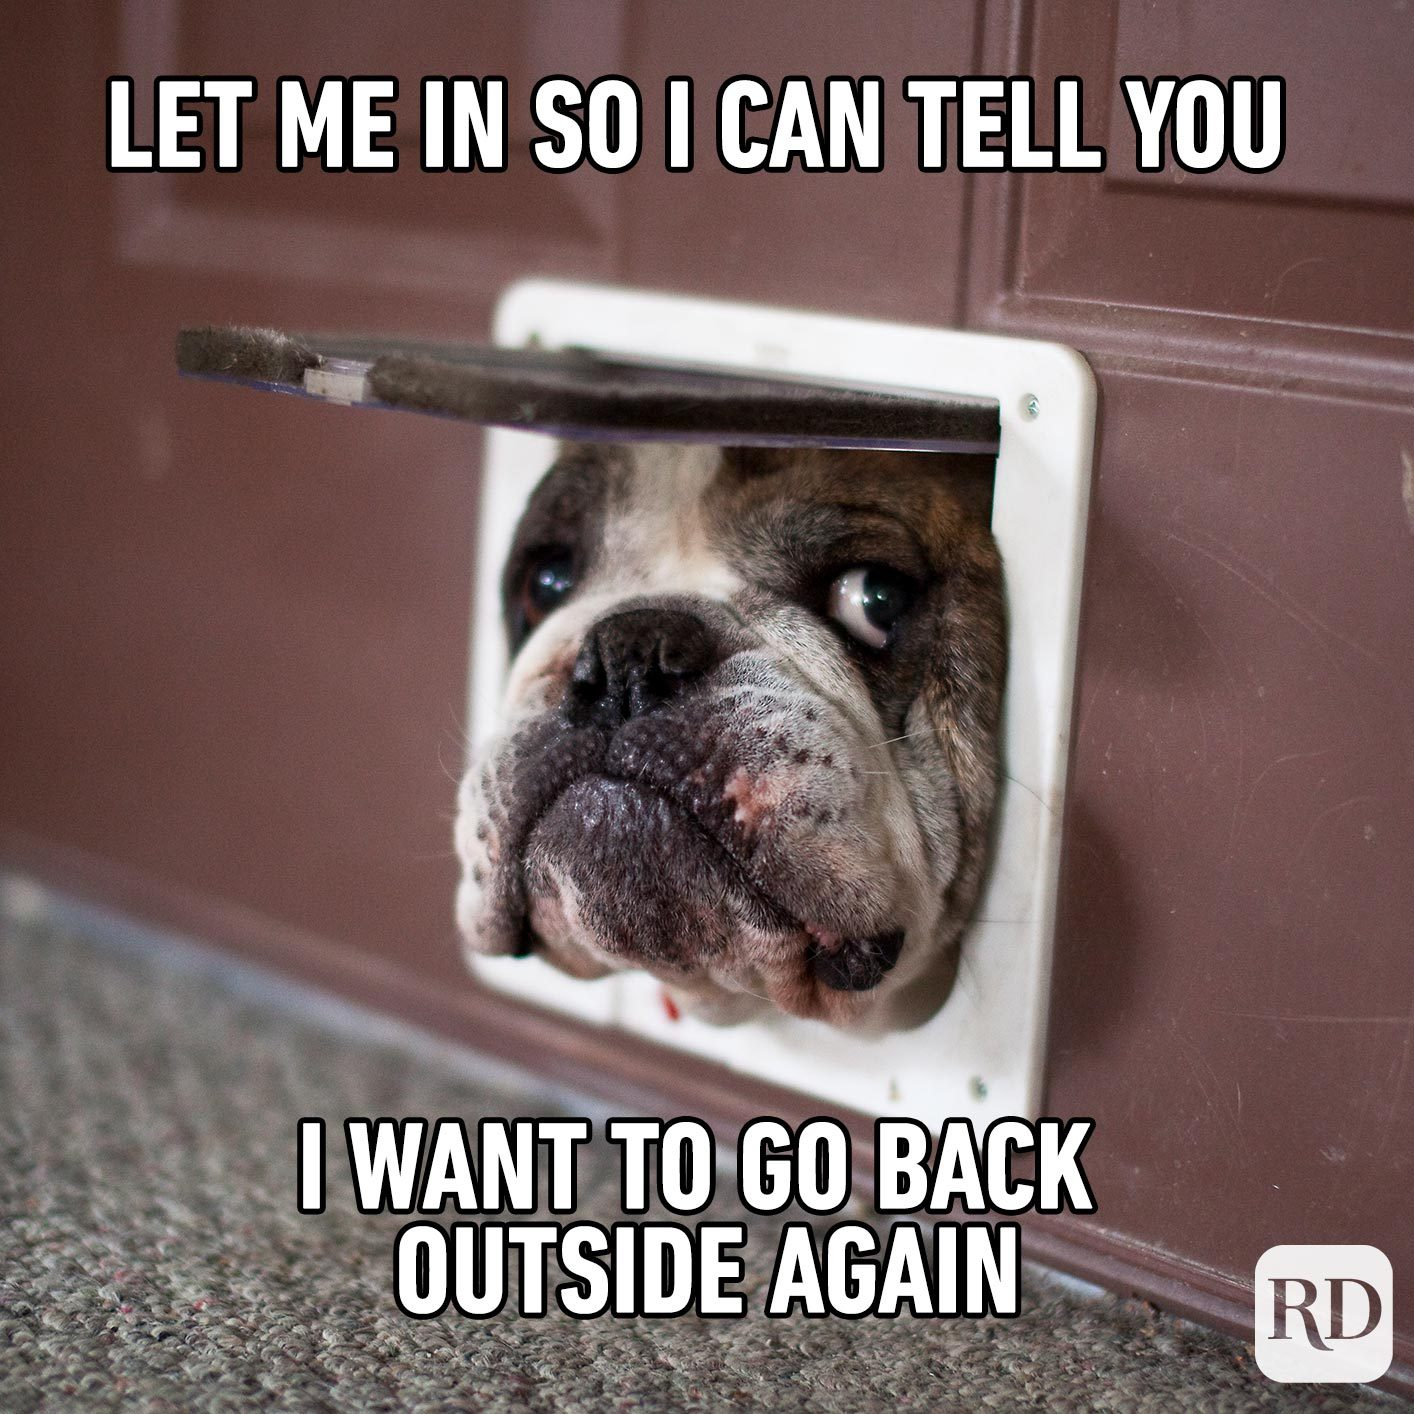 Dog sticking out of doggy door. Meme text: Let me in so I can tell you I want to go back outside again